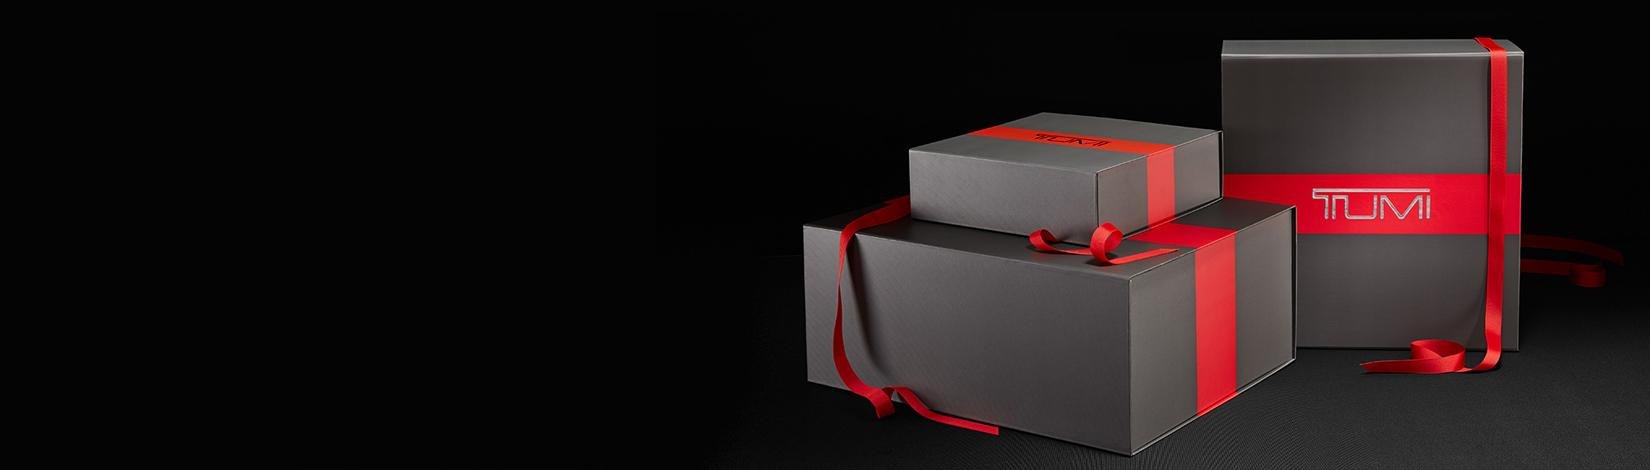 Tumi gift cards services tumi united states gift services negle Images